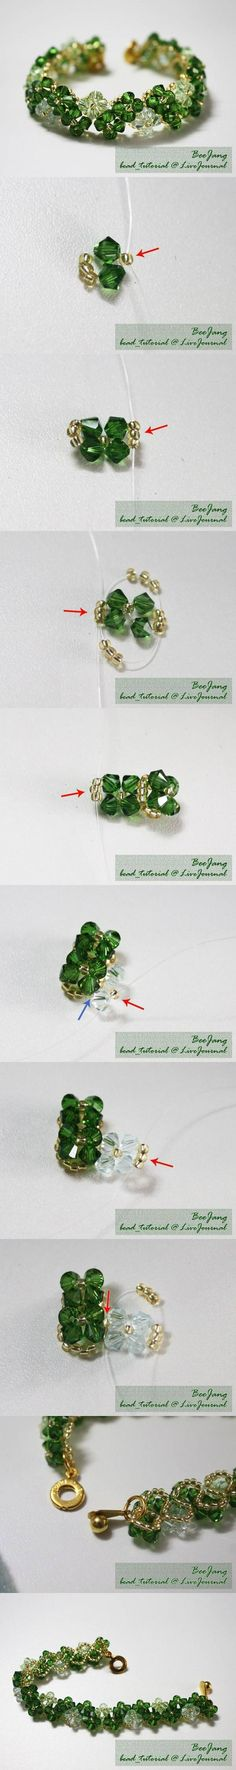 DIY Transparent Beads Bracelet DIY Projects | UsefulDIY.com